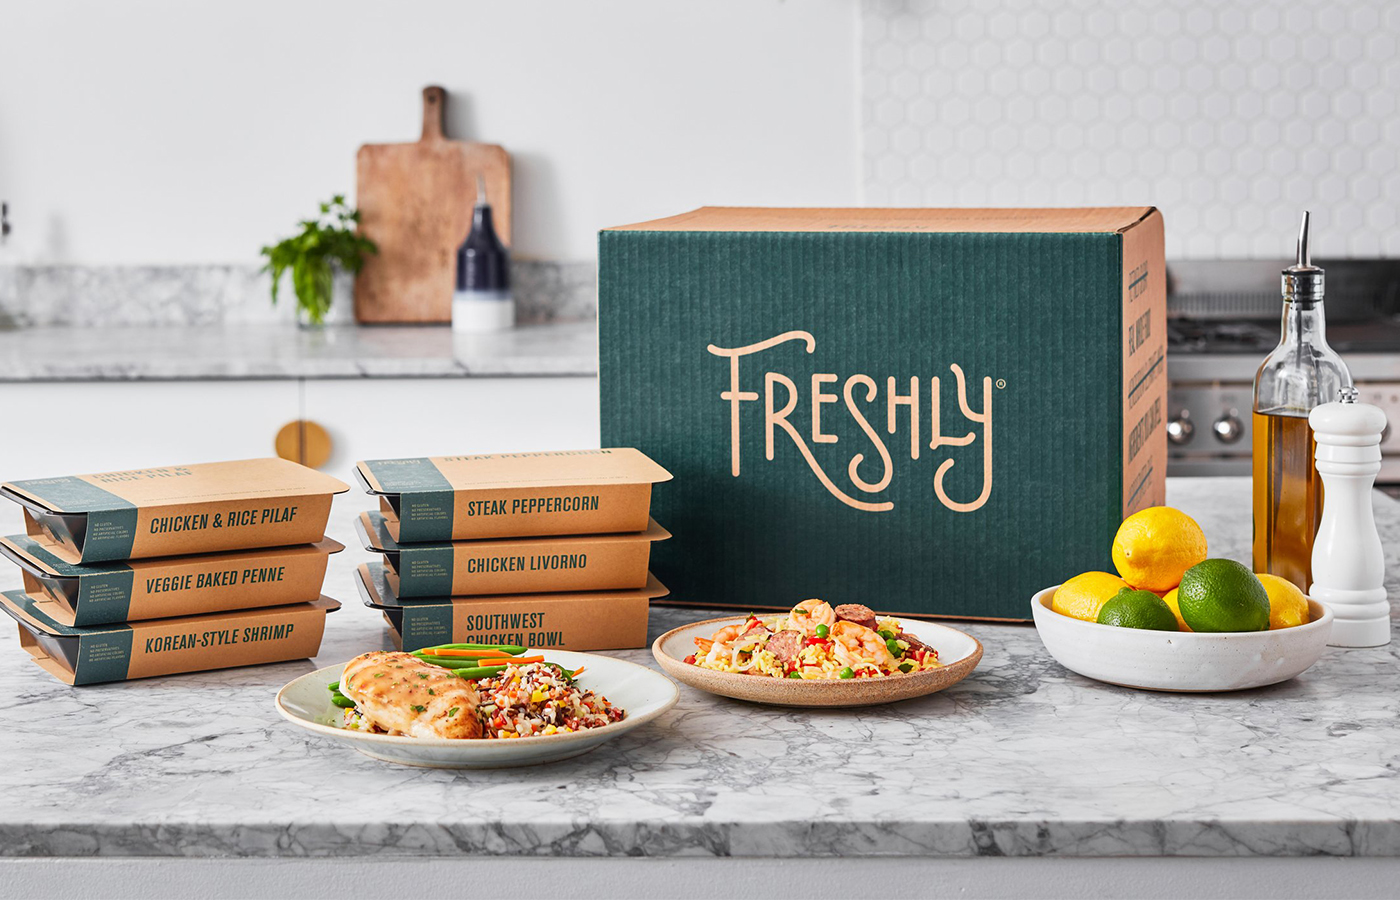 This food subscription service sends no-fuss, ready-to-eat meals